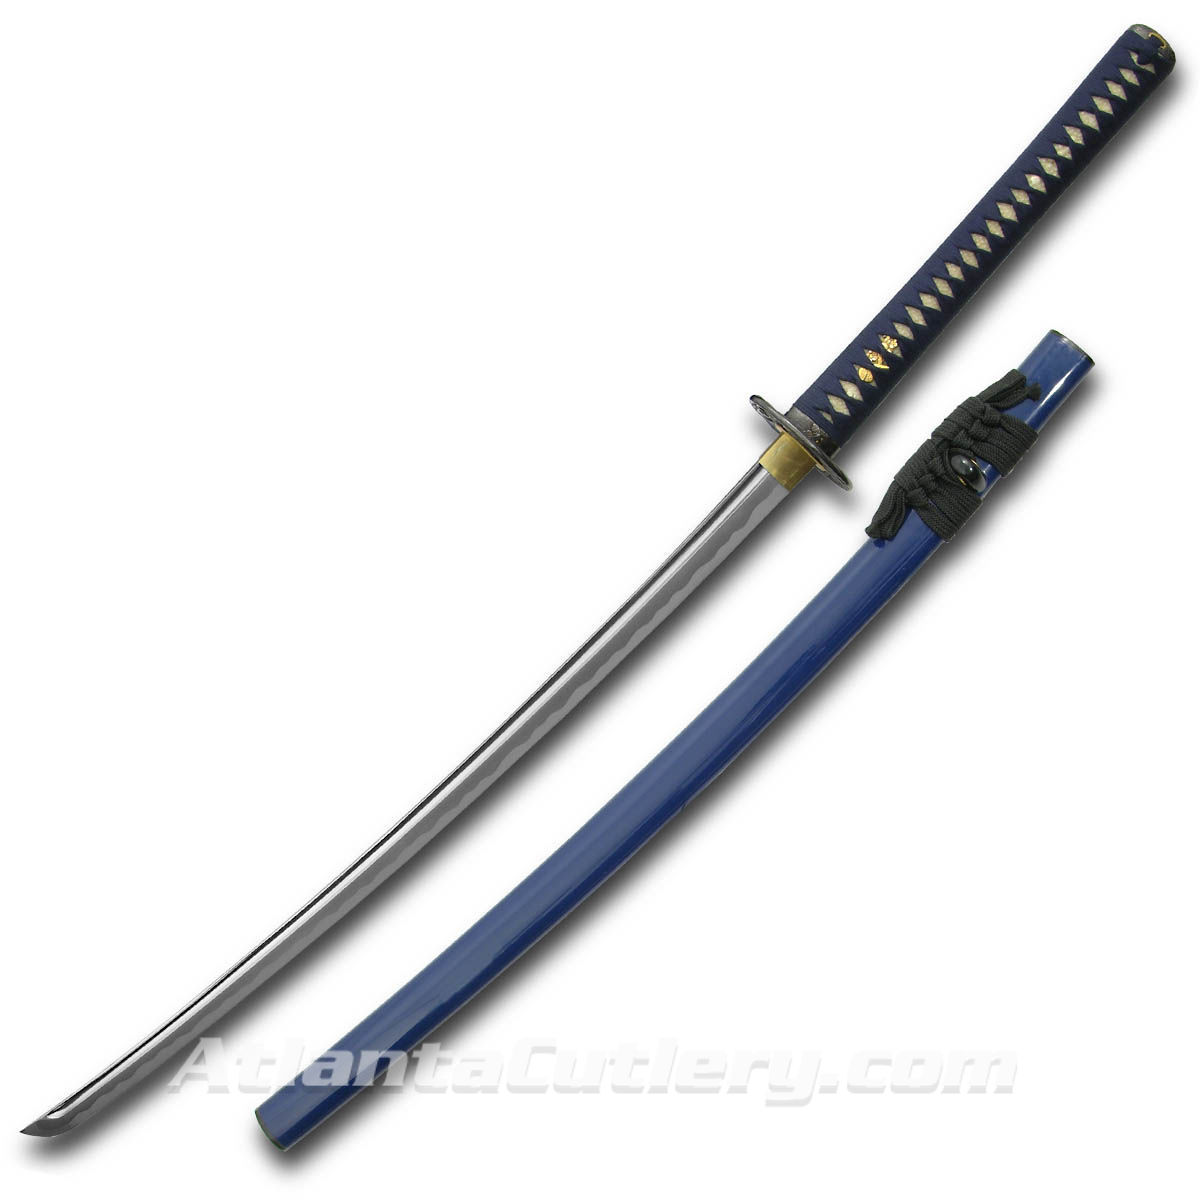 Golden Oriole Katana with deeply lacquered blue saya